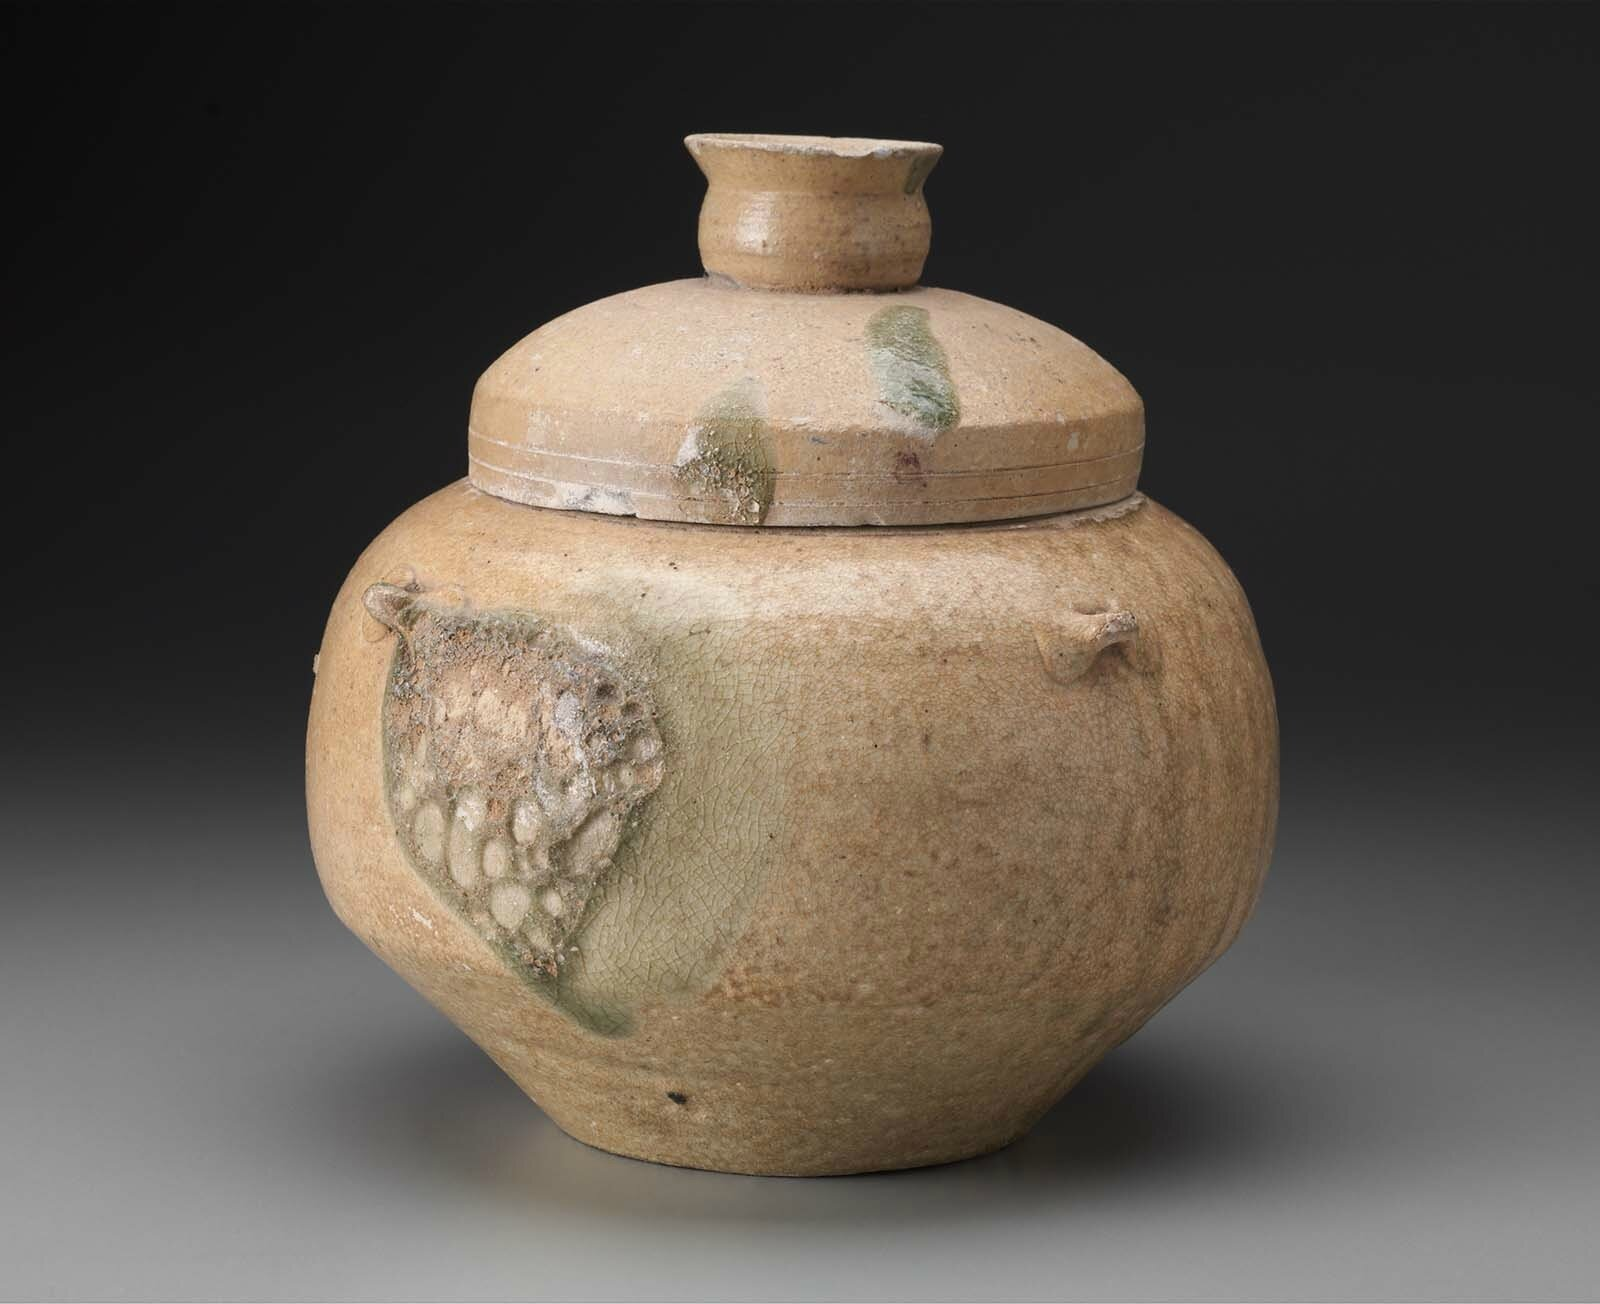 Covered jar (guan), Vietnam, Han-Viêt period, late 3rd century